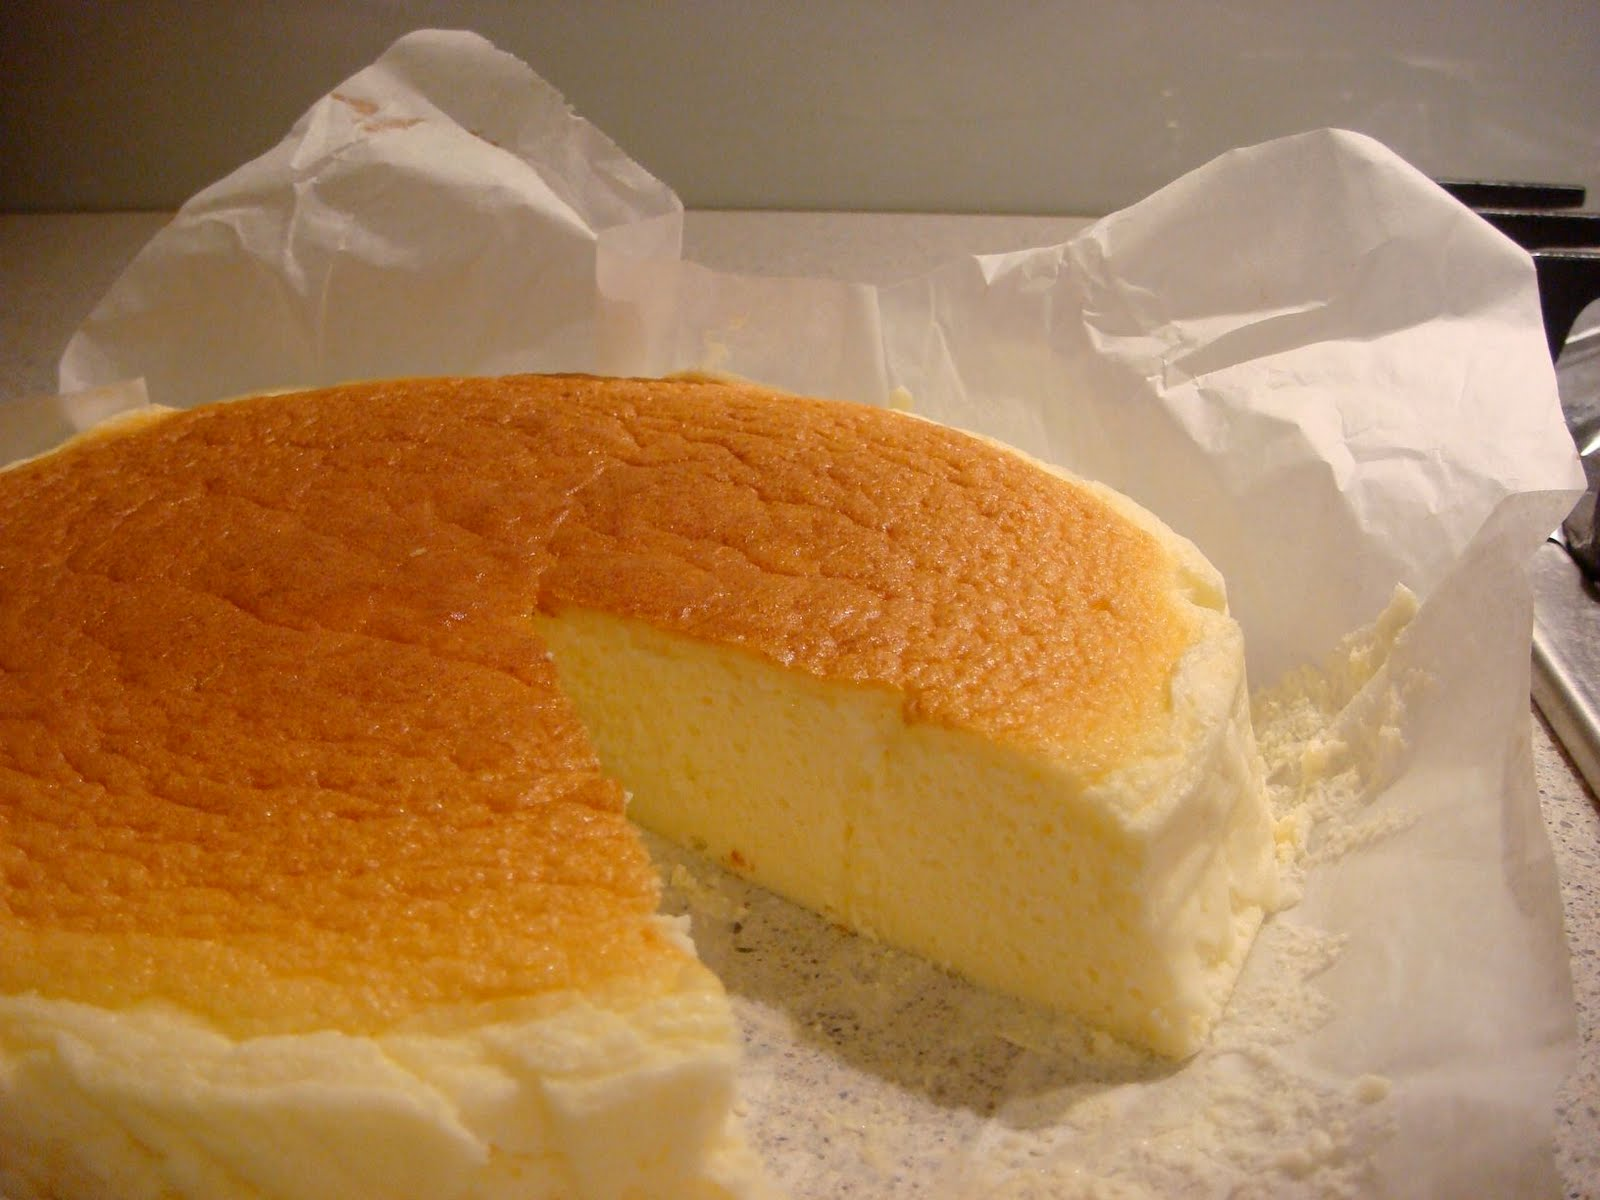 Japanese Cream Cheese Sponge Cake